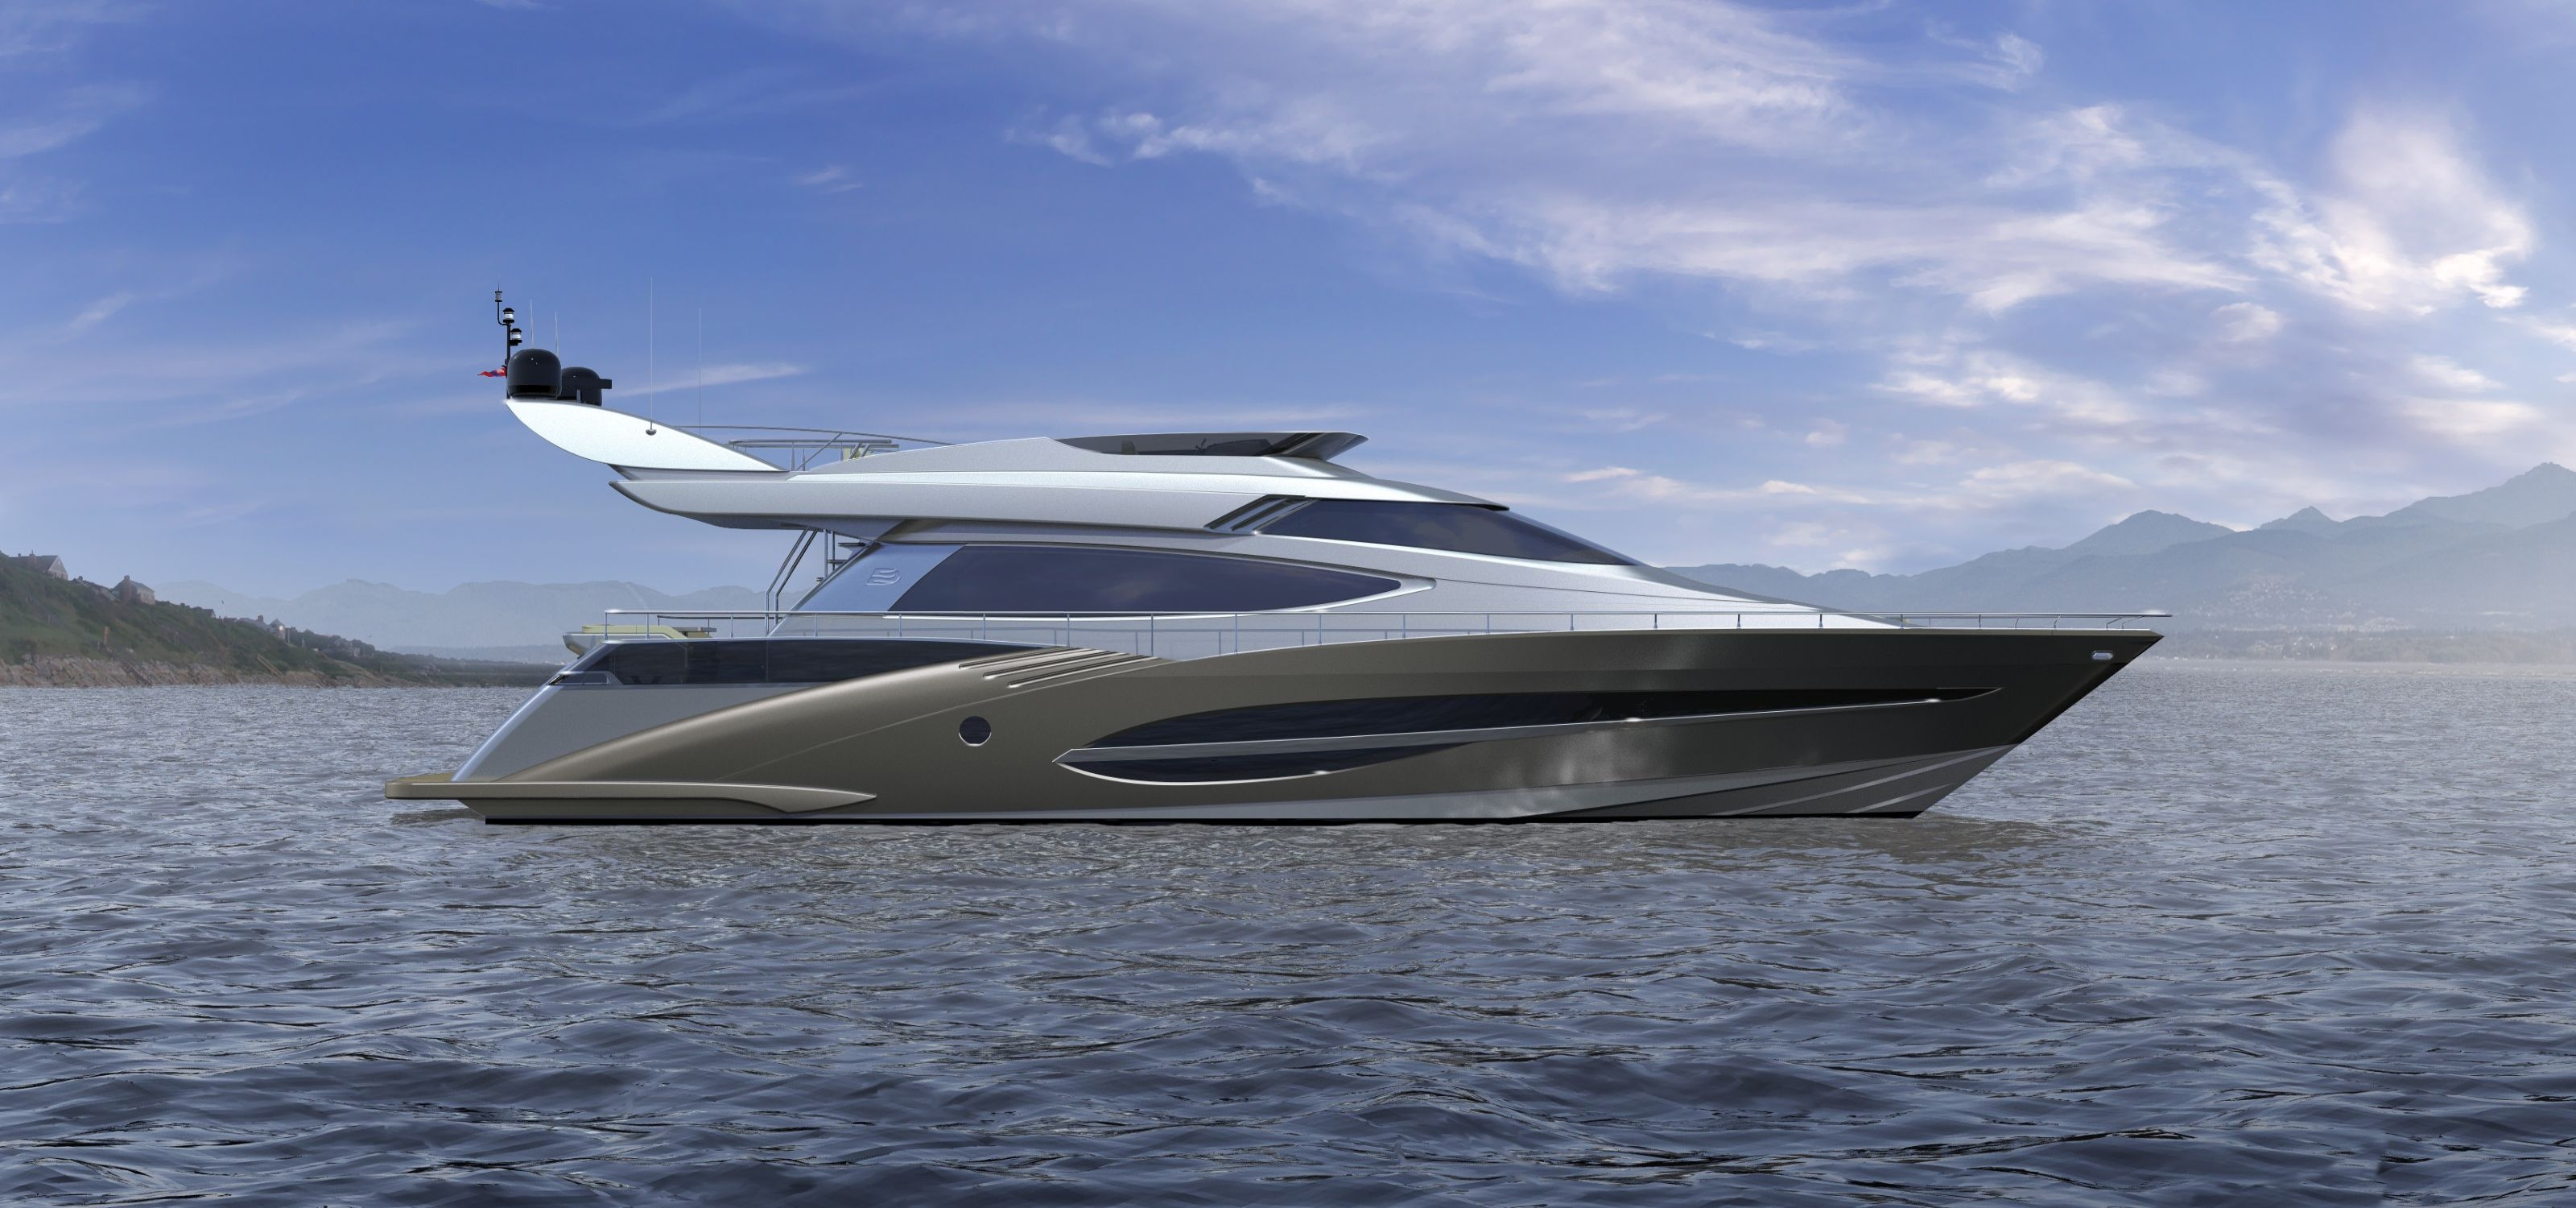 72 Motor Yacht By Joachim Kinder Design To Premiere At The Dubai 98 Ford Contour Fuse Diagram Interior Boat Show 2012 Charter Superyacht News